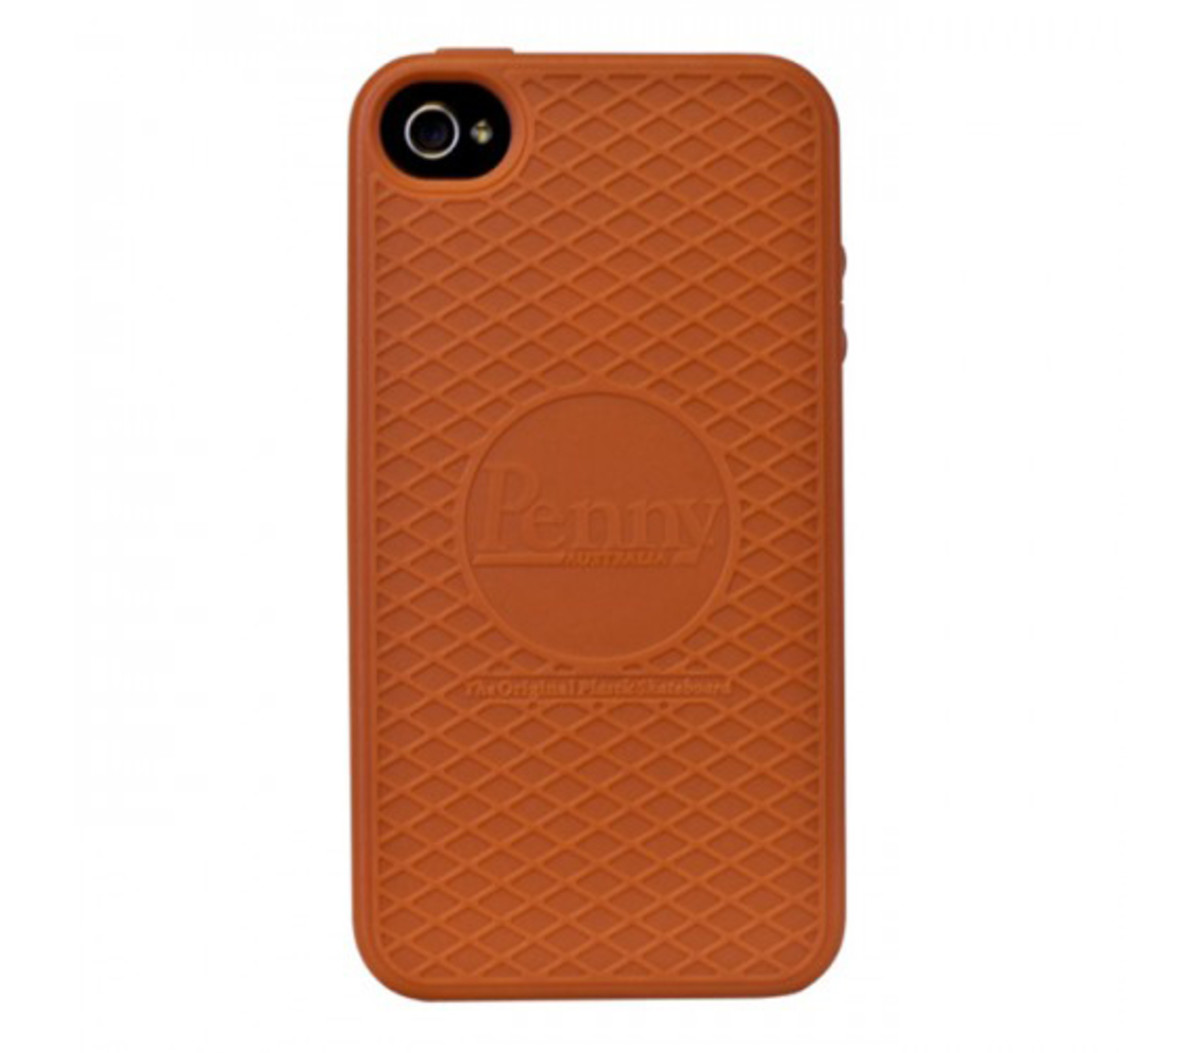 penny-skateboards-iphone-cover-12